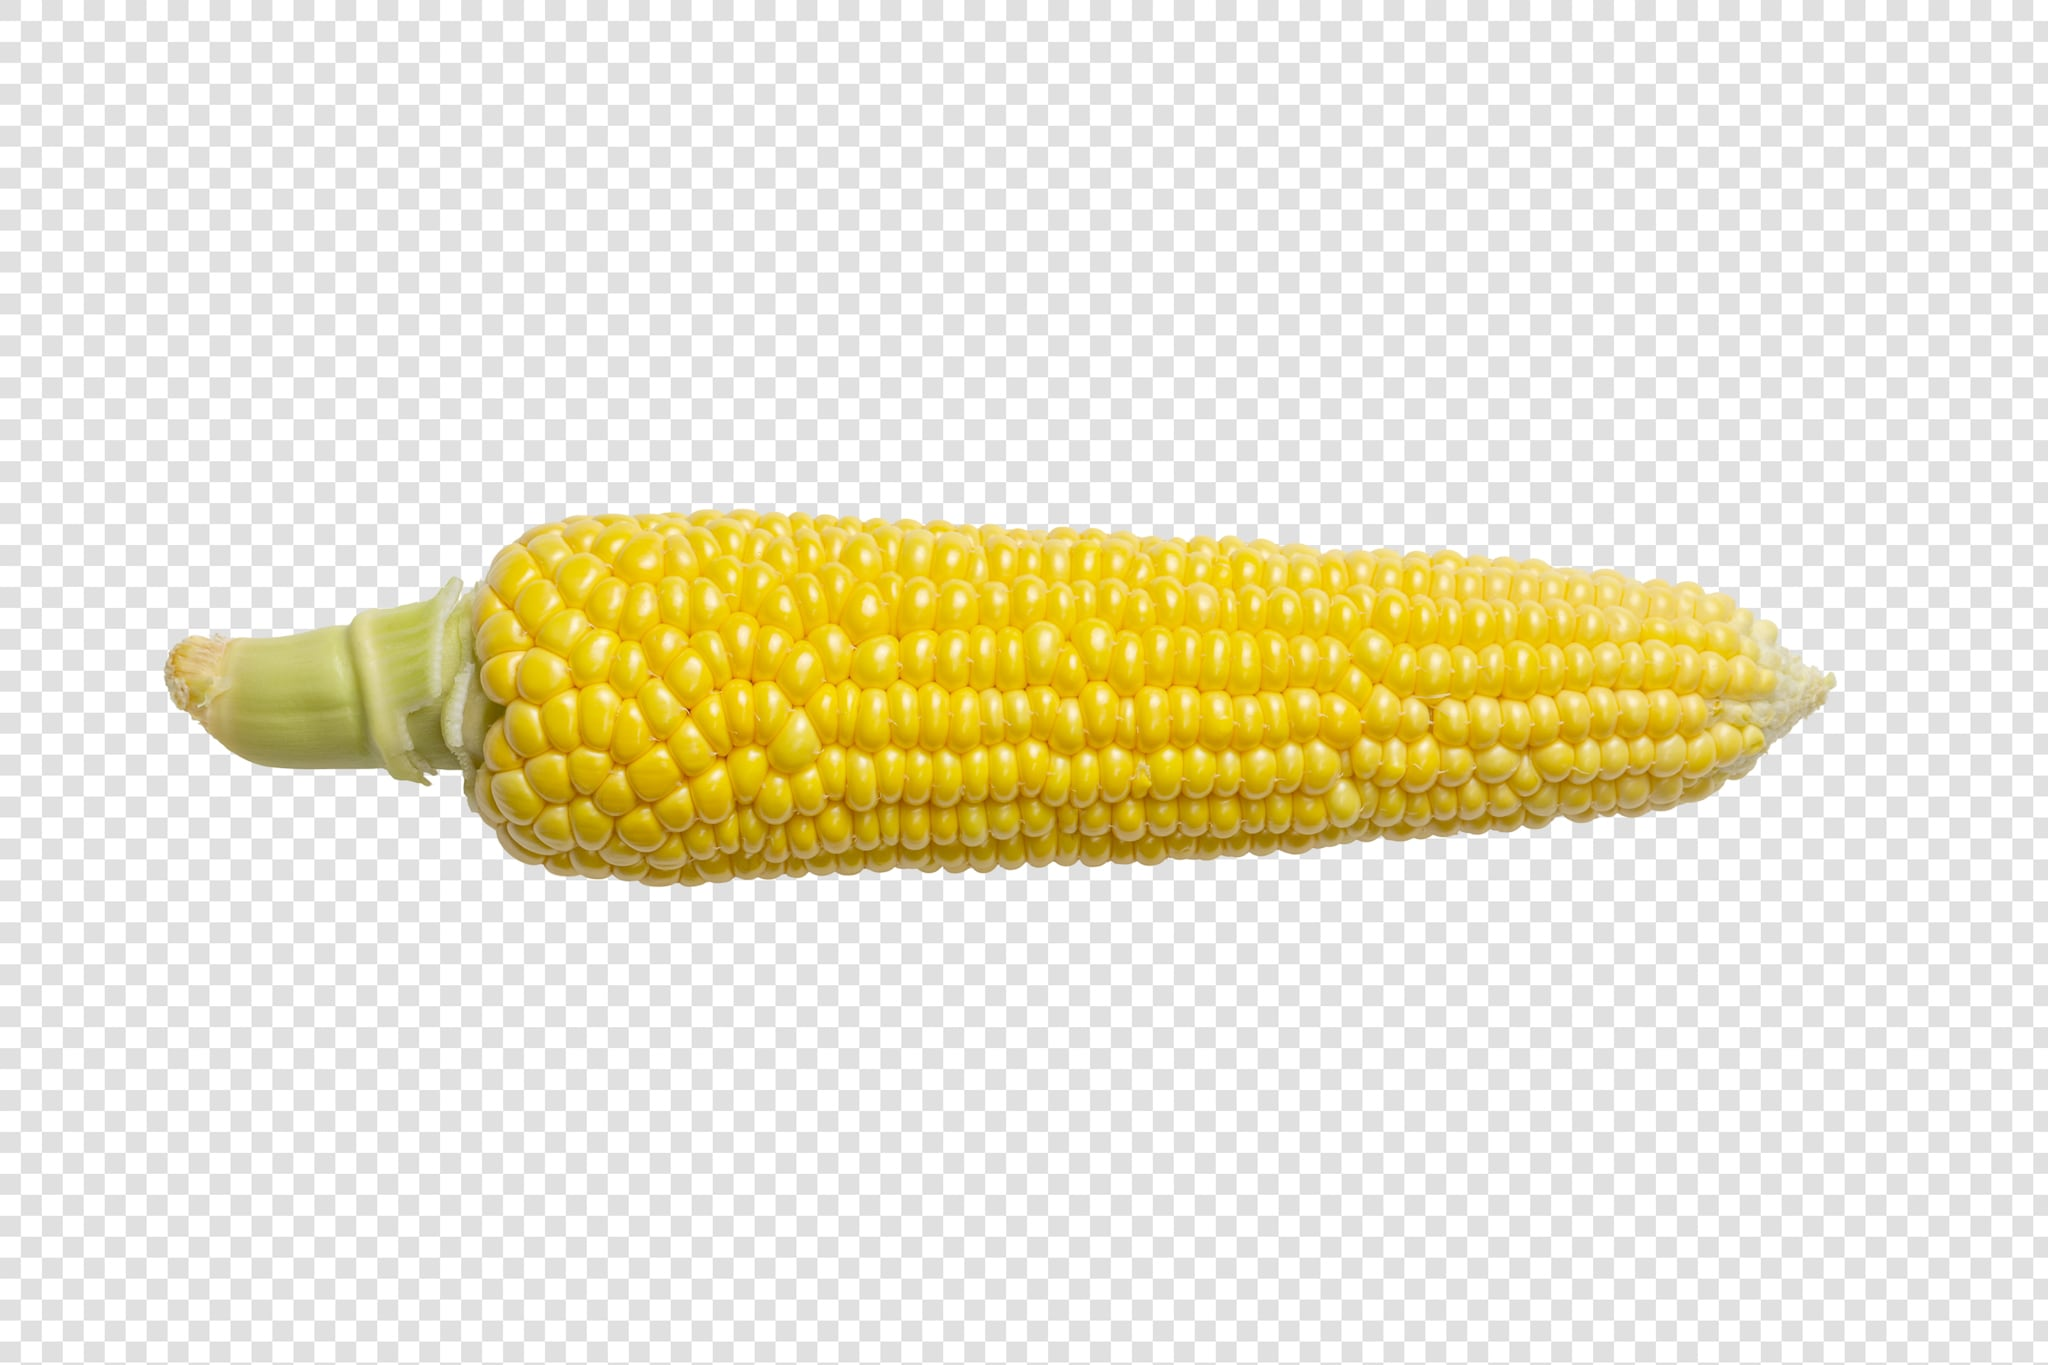 Isolated Ear of corn psd image